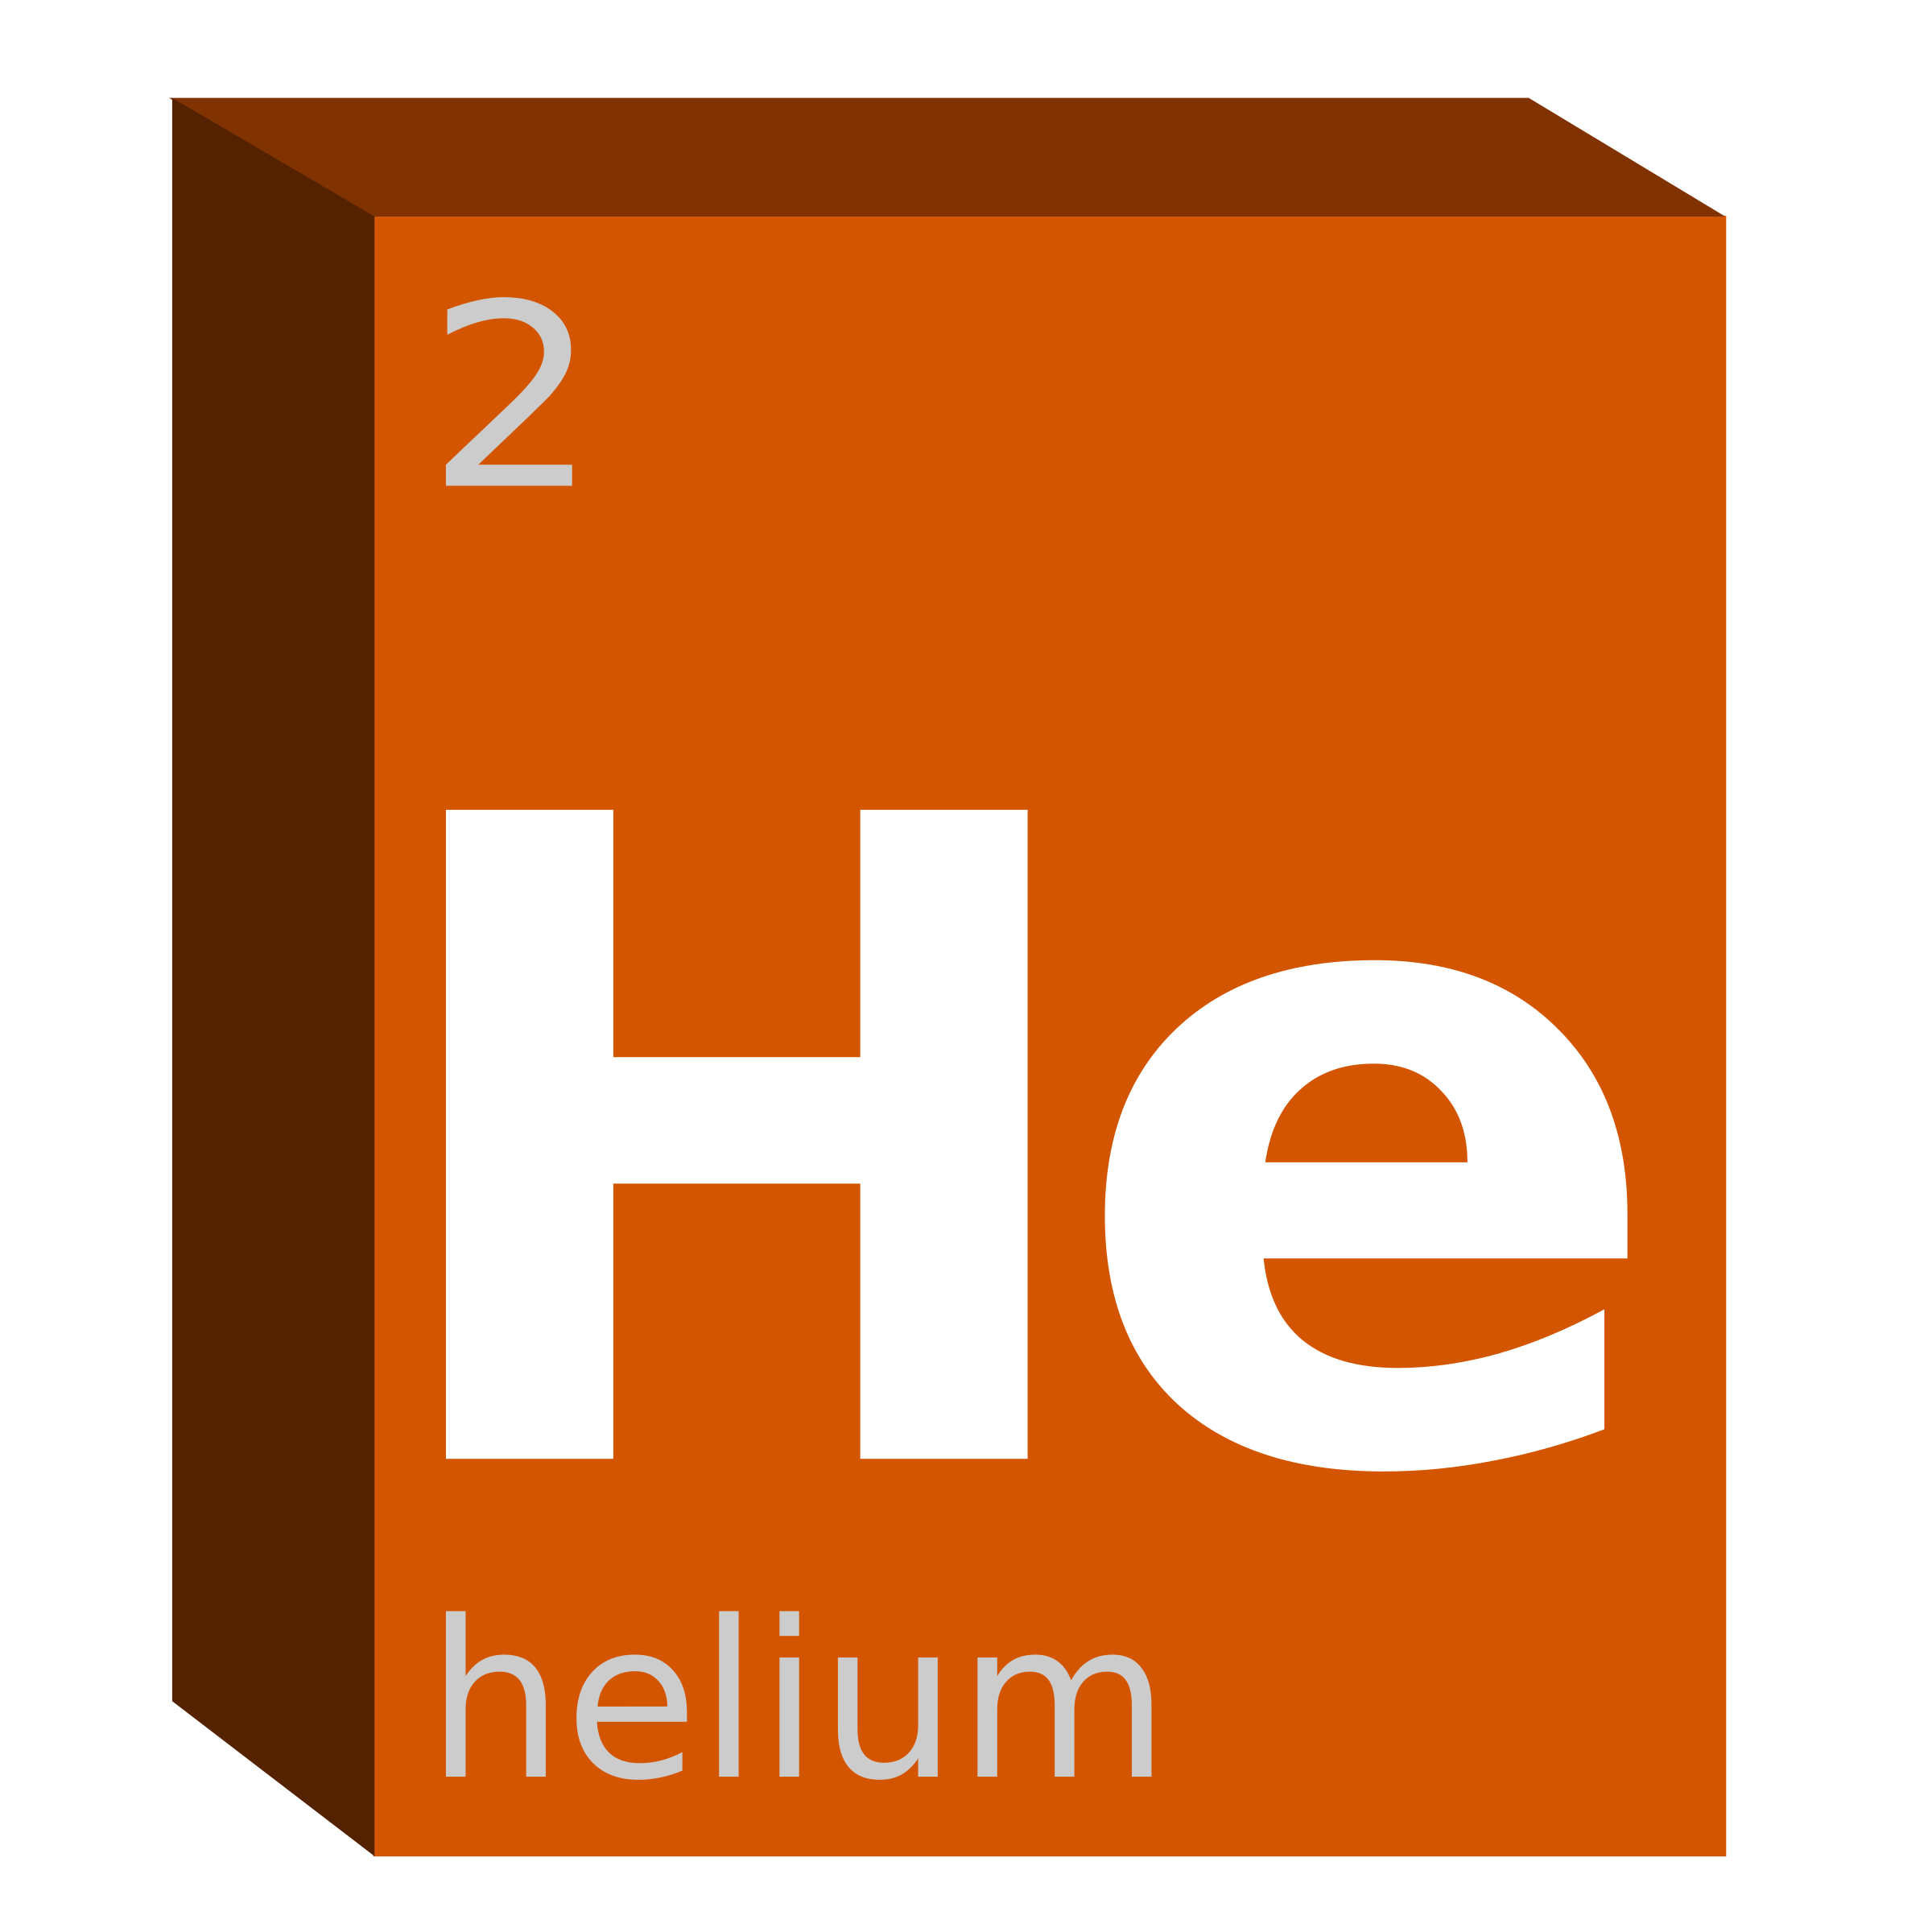 Elements clipart lead (He) Block (He) Chemistry Helium